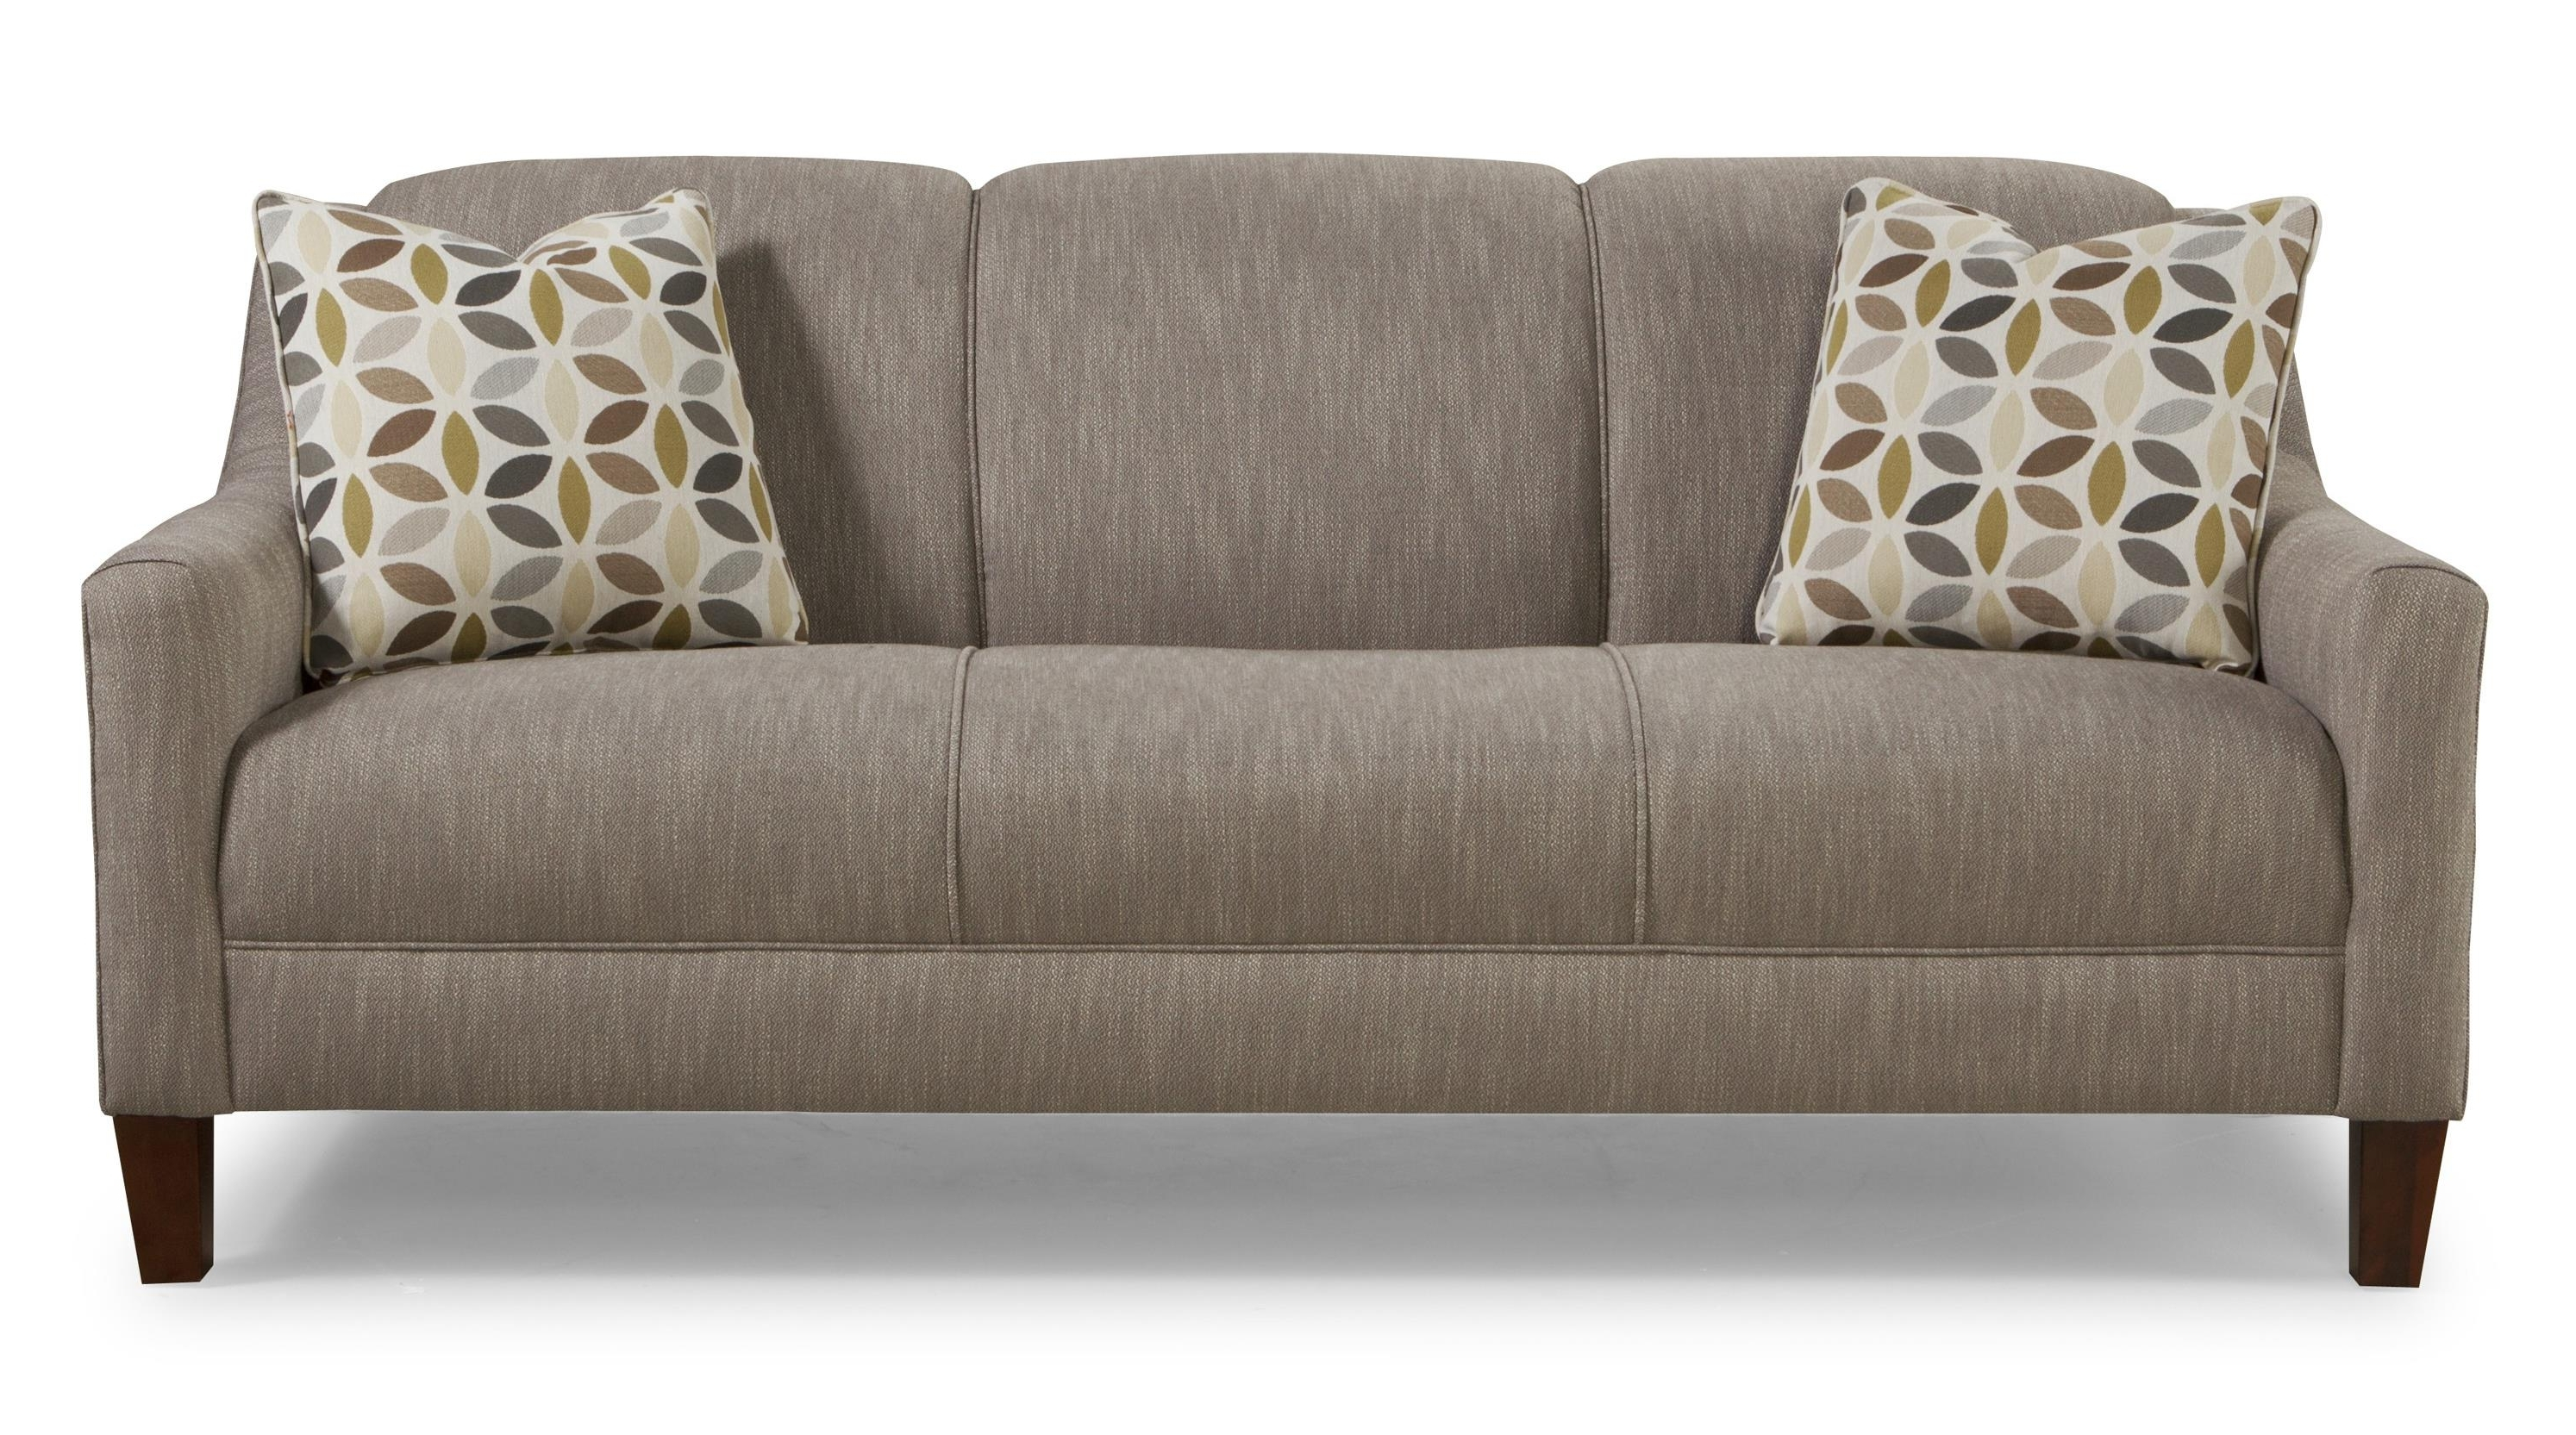 Apartment Size Sofas Pertaining To Well Liked Sofa: Stylish Apartment Size Sofas Small Sectionals, Sofas Under (View 4 of 15)